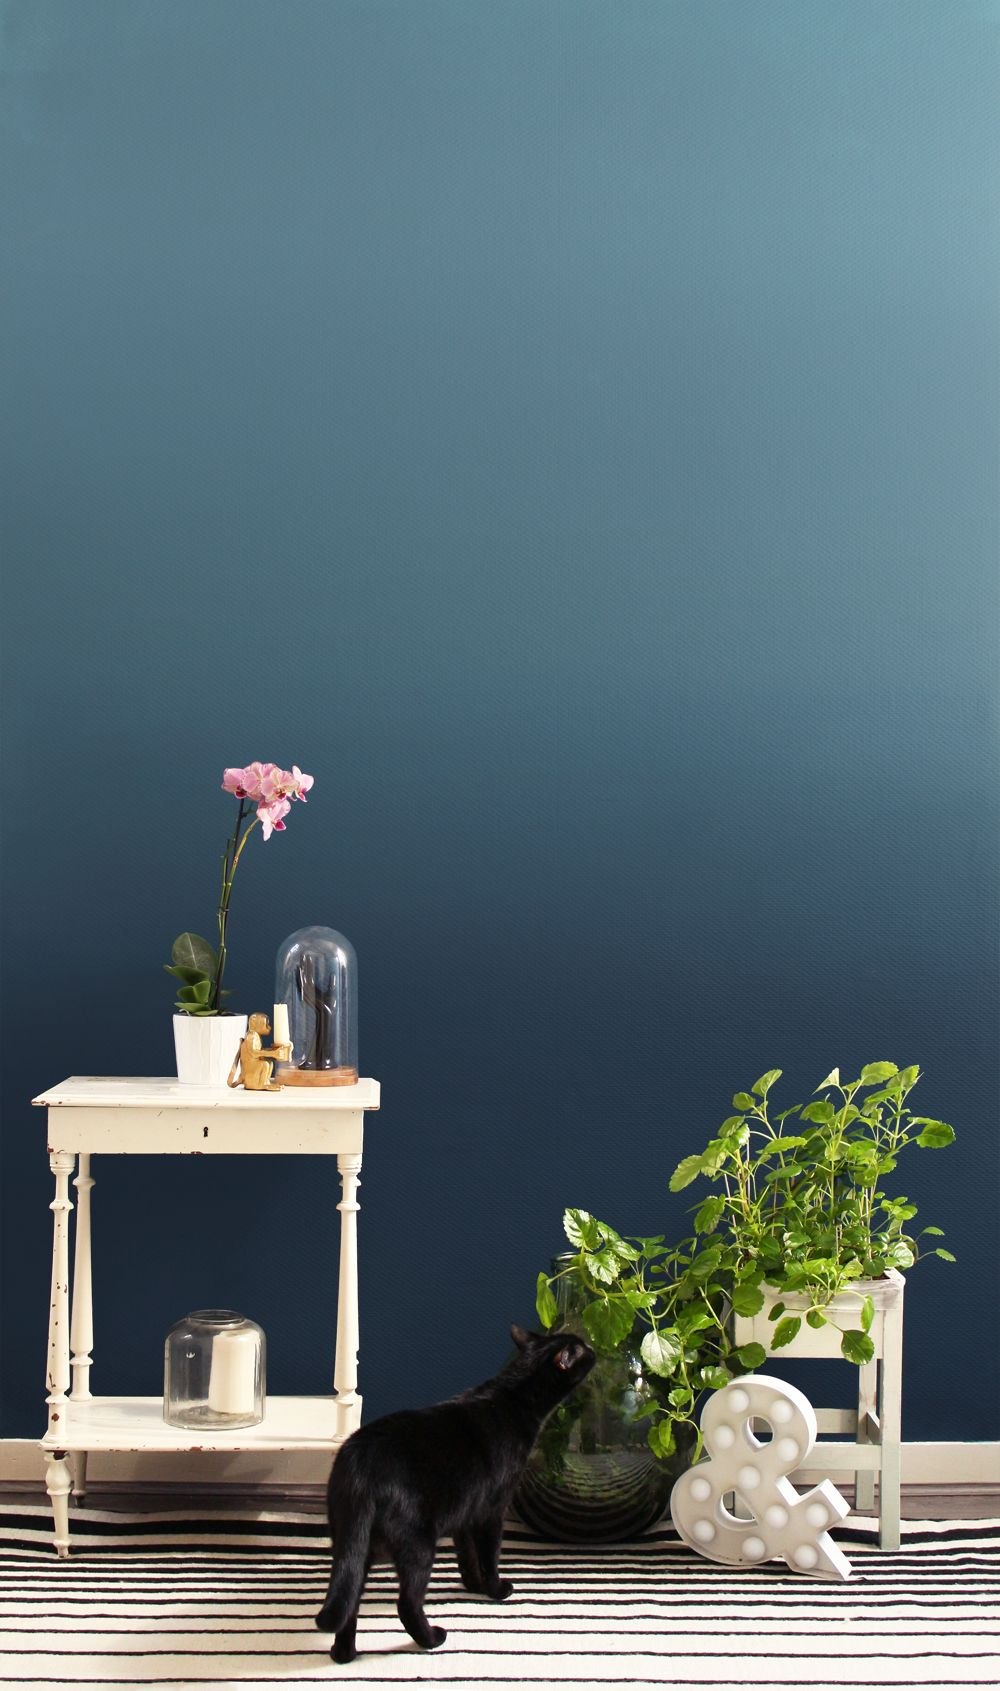 Do It Yourself Le Joli Ombre Wall Ombre Wall Diy Ombre Wall Ombre Painted Walls